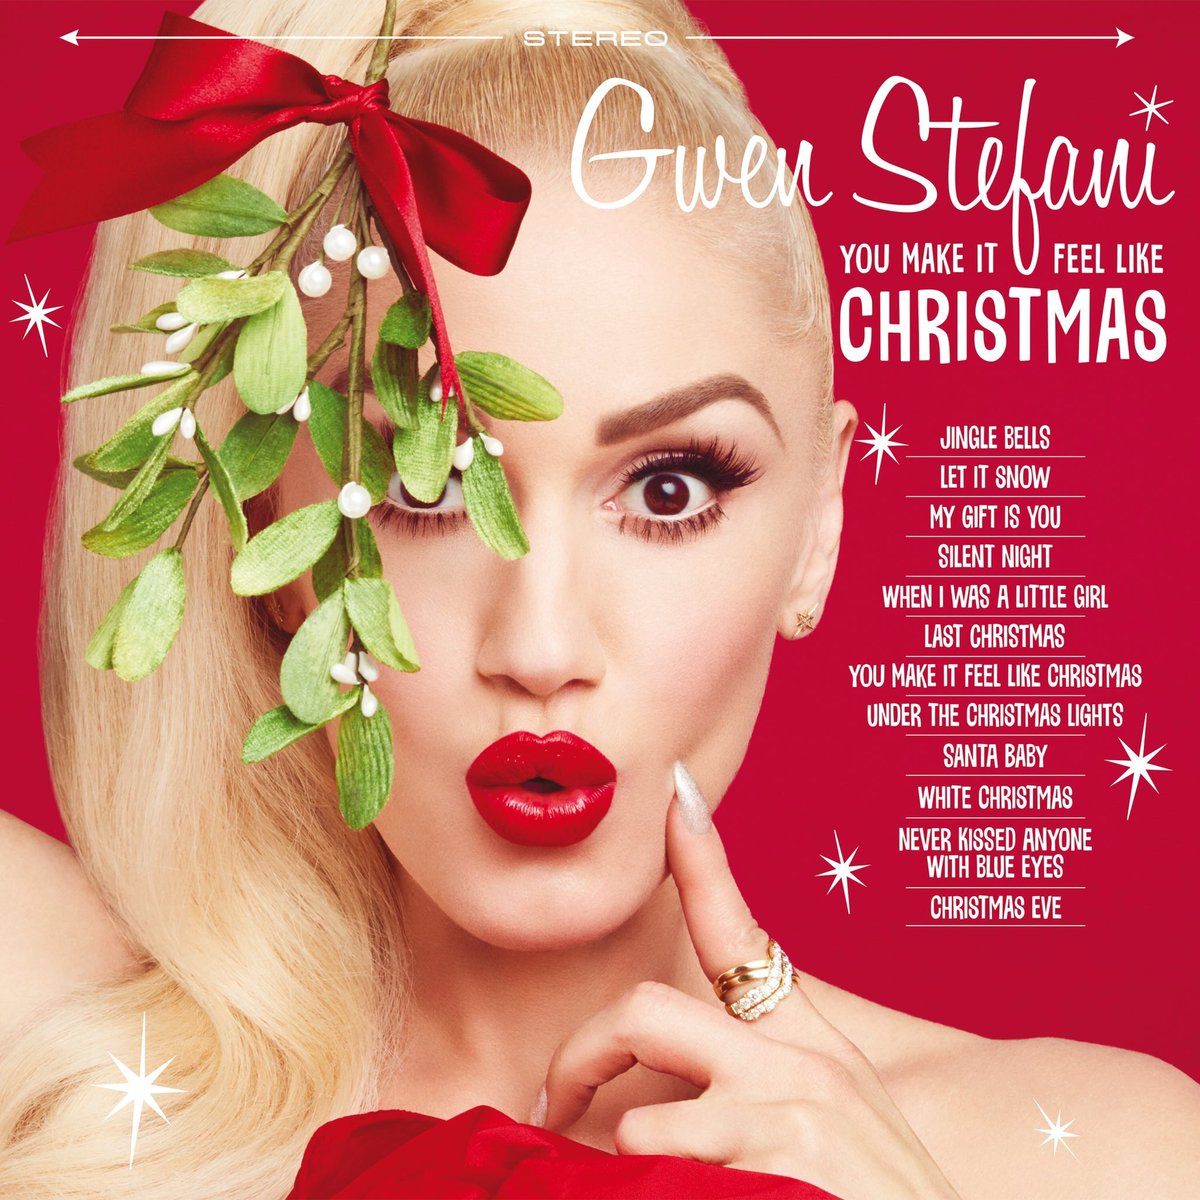 Gwen Stefani You Make It Feel Like Christmas Review